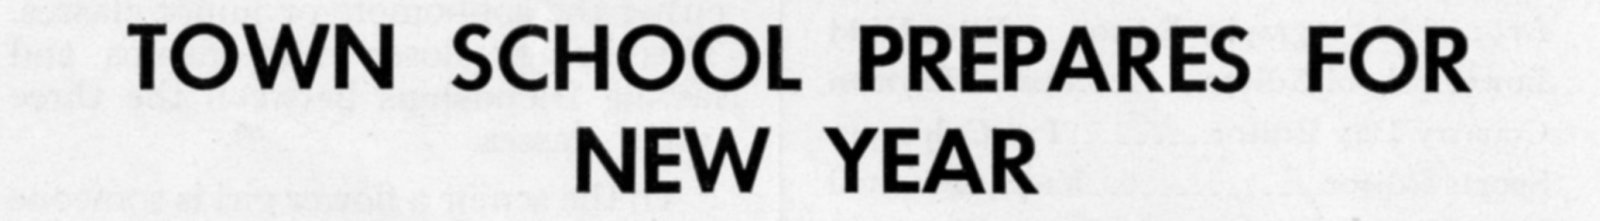 ""\""""Town School Prepares For New Year"""" from The Match, Vol. XIV, No. 1, November 1958""1600|221|?|en|2|64cfec2ca2d4cad8a6da03897ccbe3e2|False|UNLIKELY|0.3363650441169739